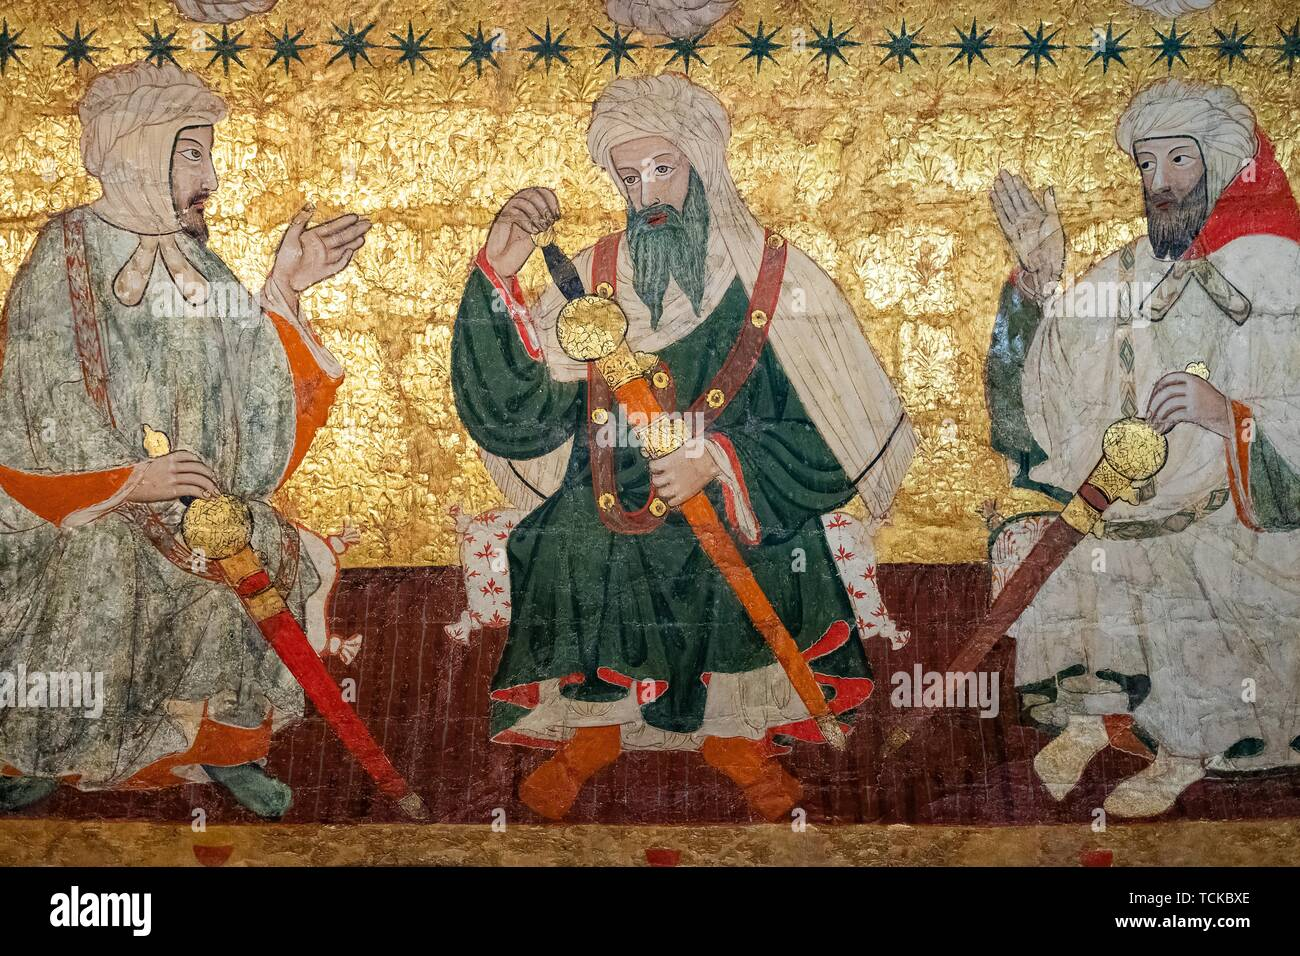 Meeting of Islamic dignitaries, ceiling painting, Sala de los Reyes, Room of the Kings, Nasrid palaces, Alhambra, Granada, Andalusia, Spain Stock Photo